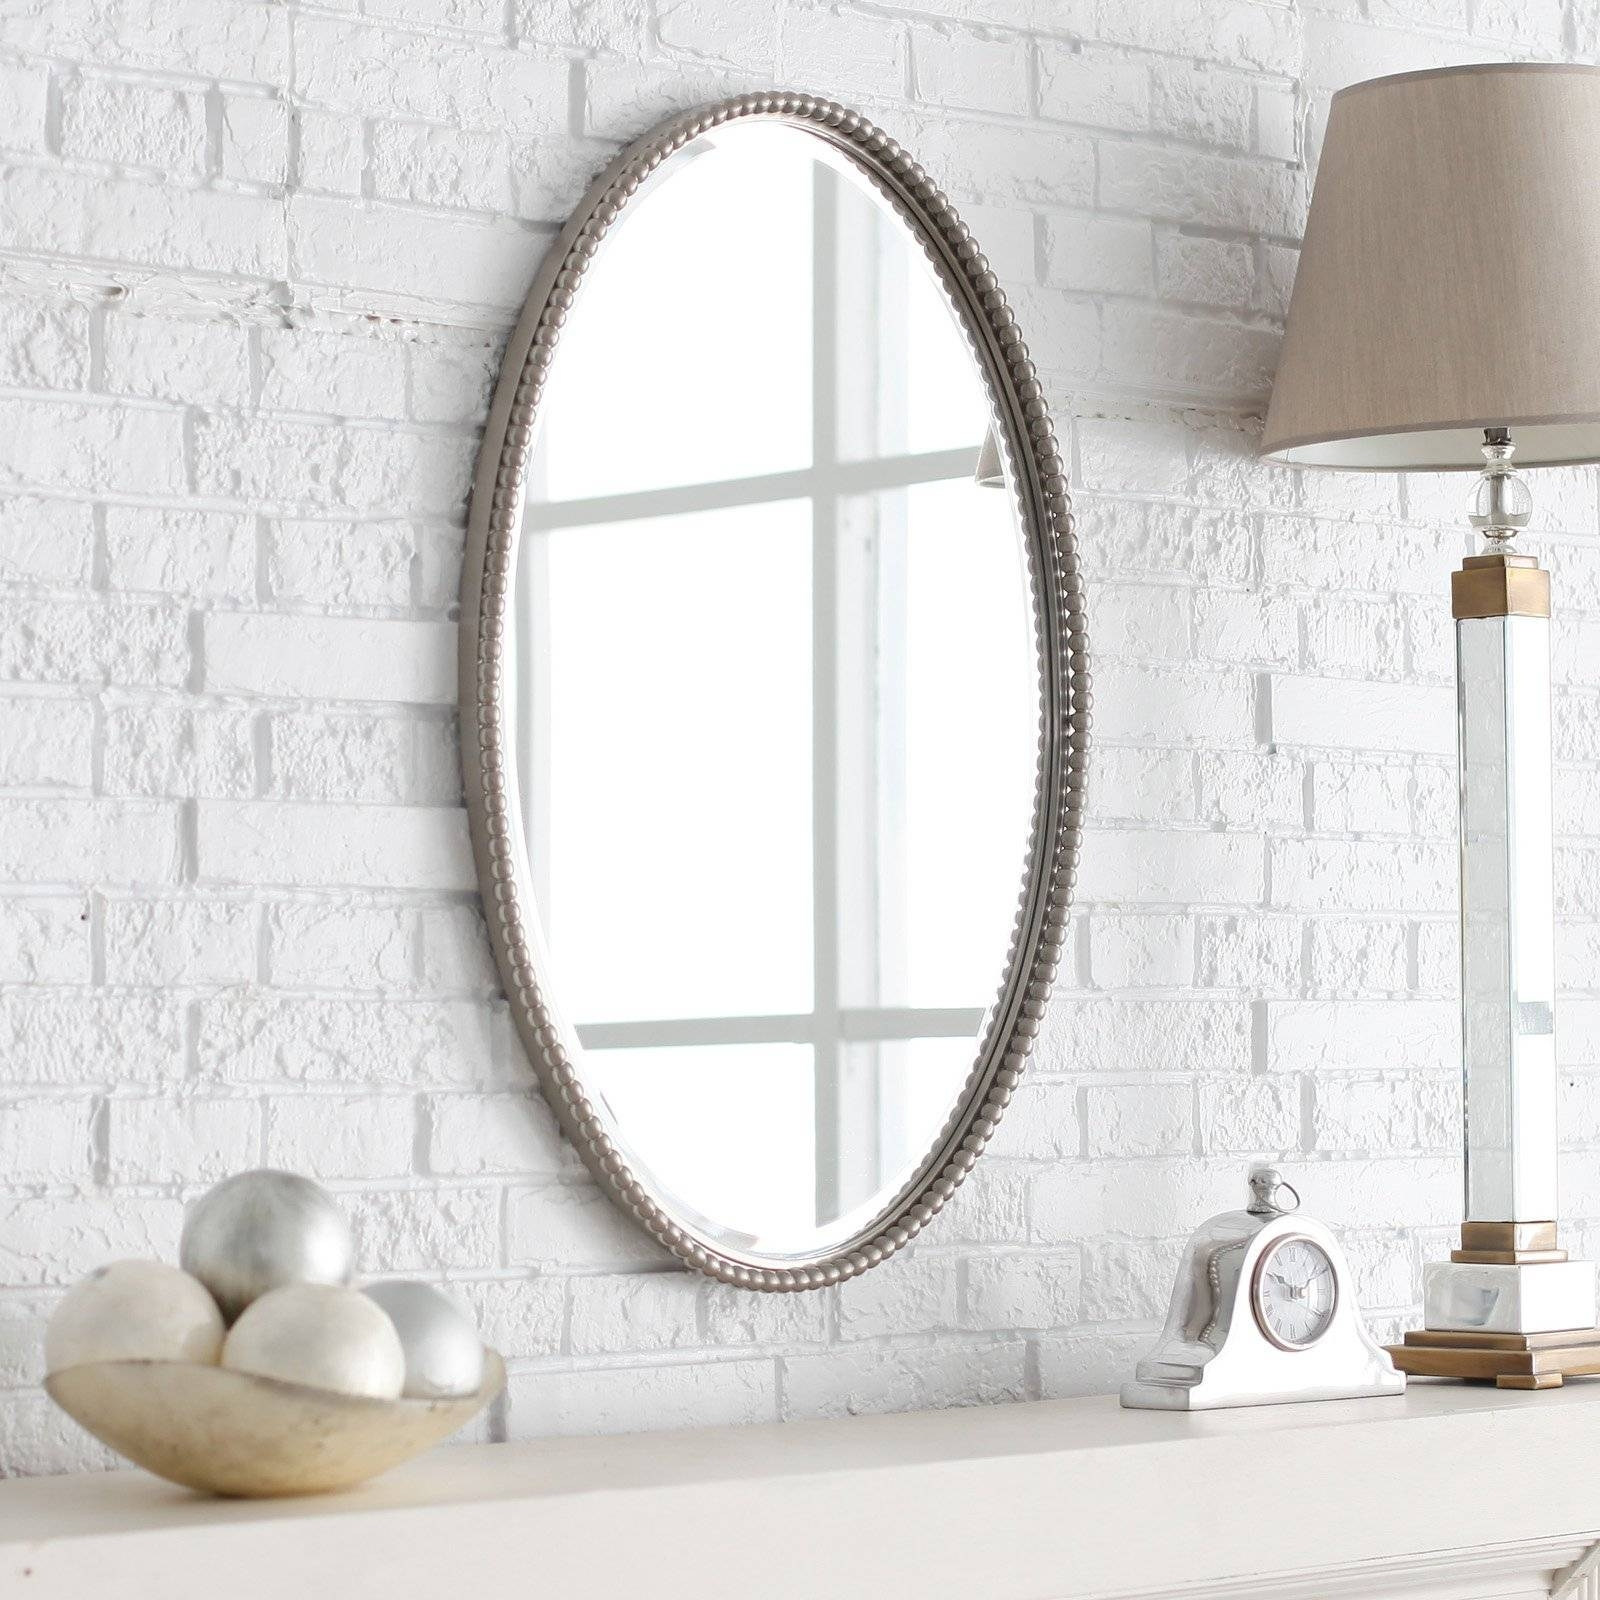 Uttermost Frameless Oval Beveled Vanity Mirror | Hayneedle With Regard To Oval Wall Mirrors (View 25 of 25)